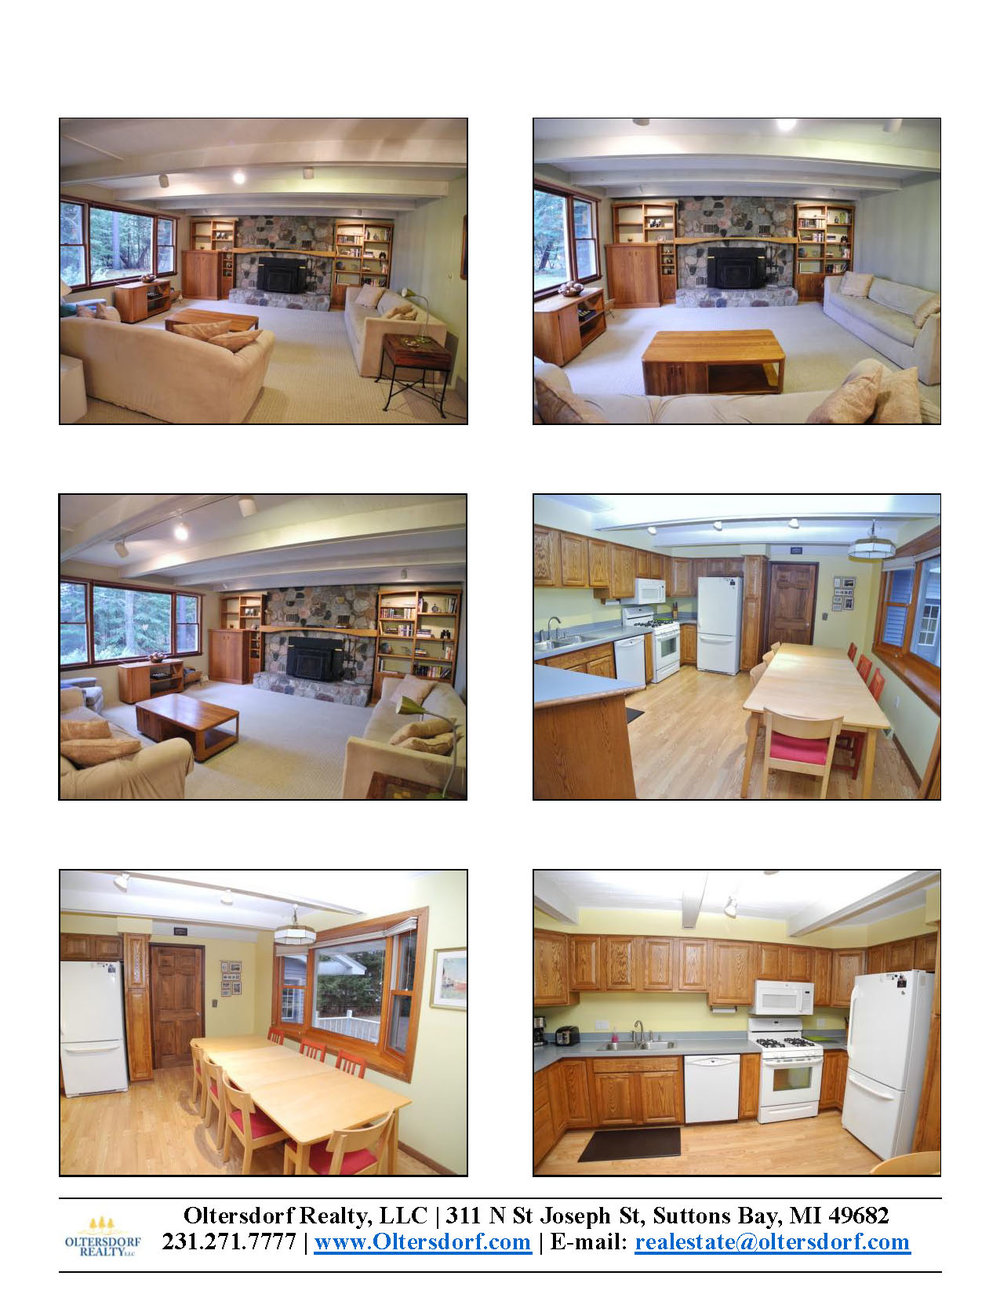 3778 S Lee Point Road, Suttons Bay waterfront home for sale by Oltersdorf Realty LLC Suttons Bay & Leelanau County Realtors - Photo Gallery (4).jpg